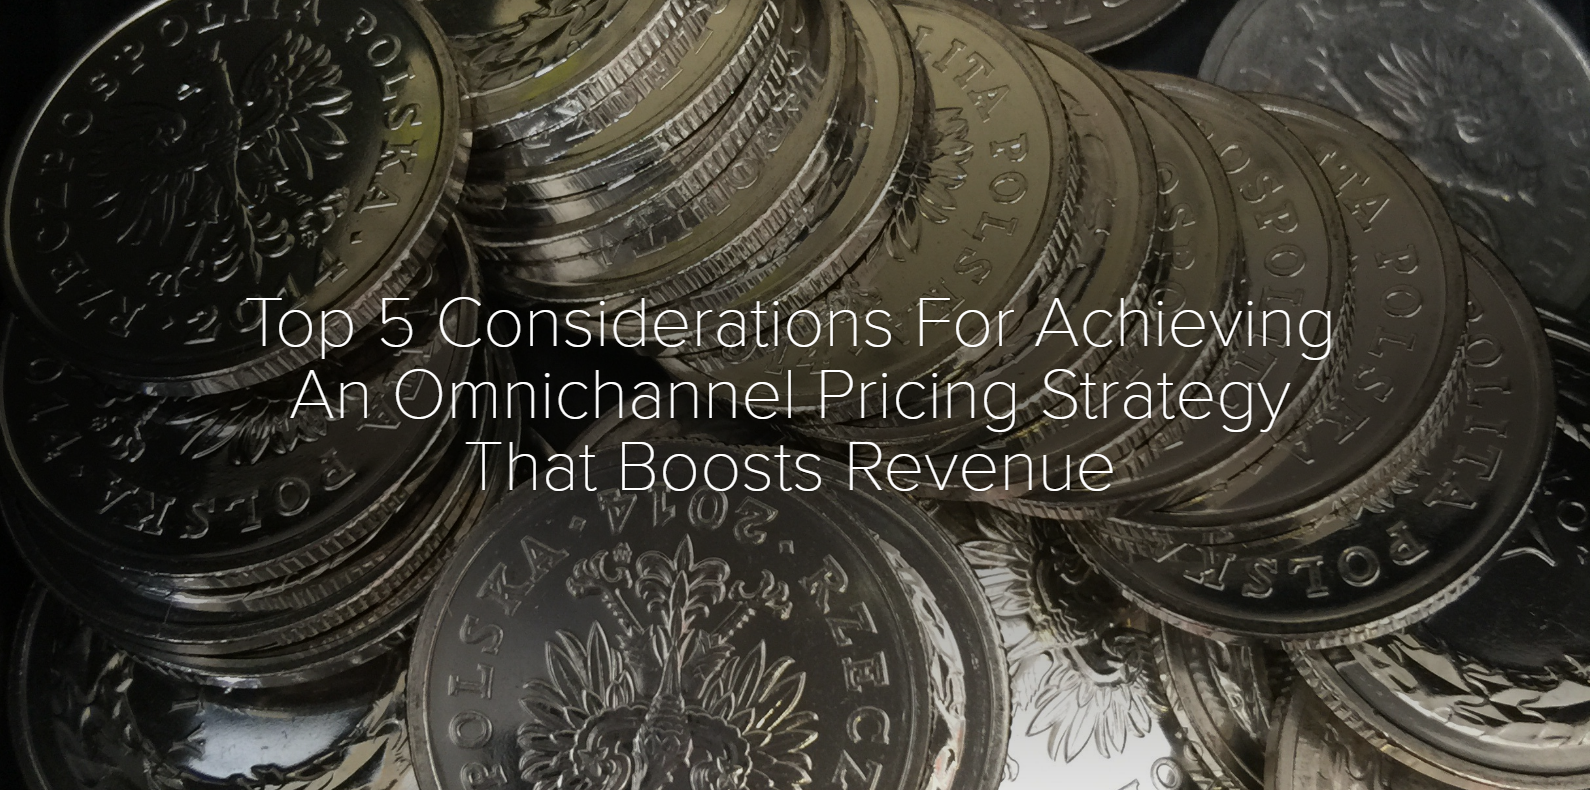 Top 5 Considerations For Achieving An Omnichannel Pricing Strategy That Boosts Revenue